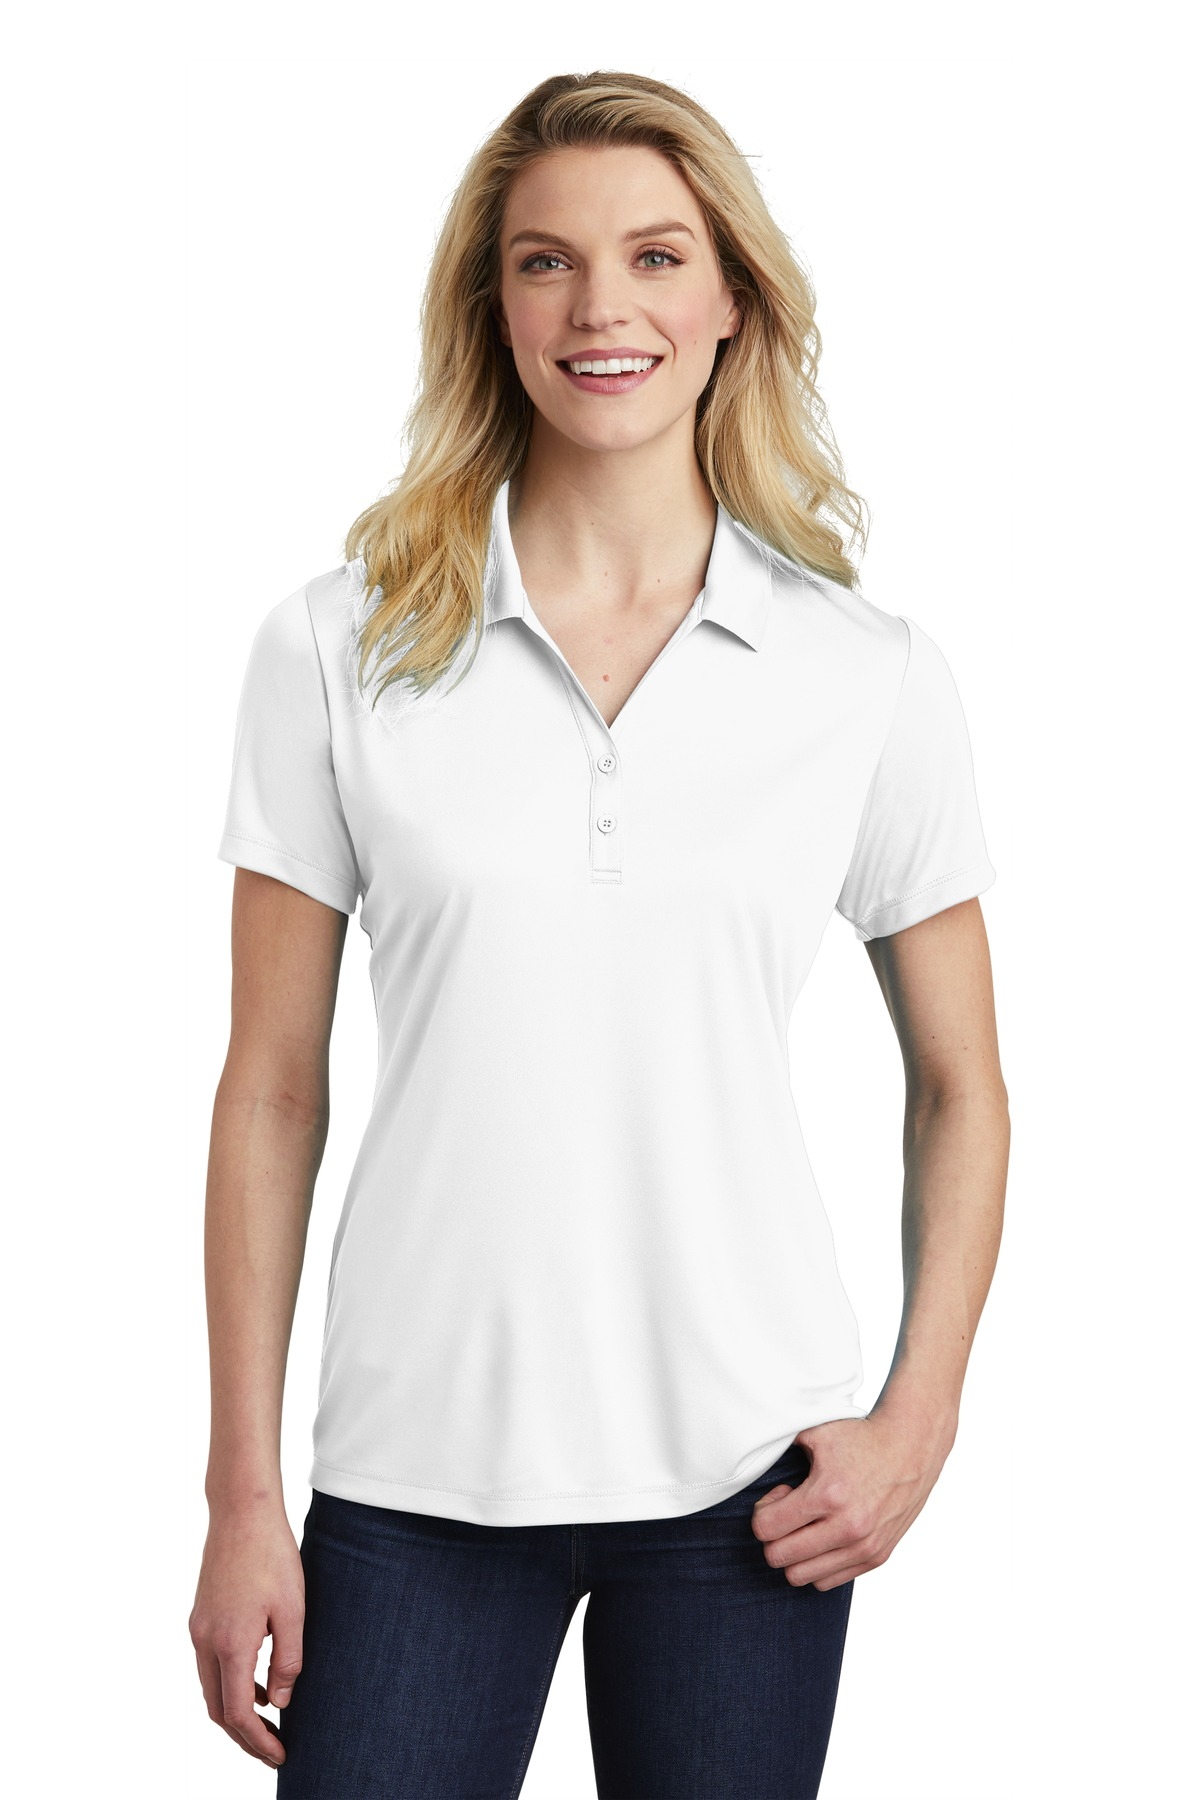 Sport-Tek  ®  Ladies PosiCharge  ®  Competitor  ™  Polo. LST550 - White